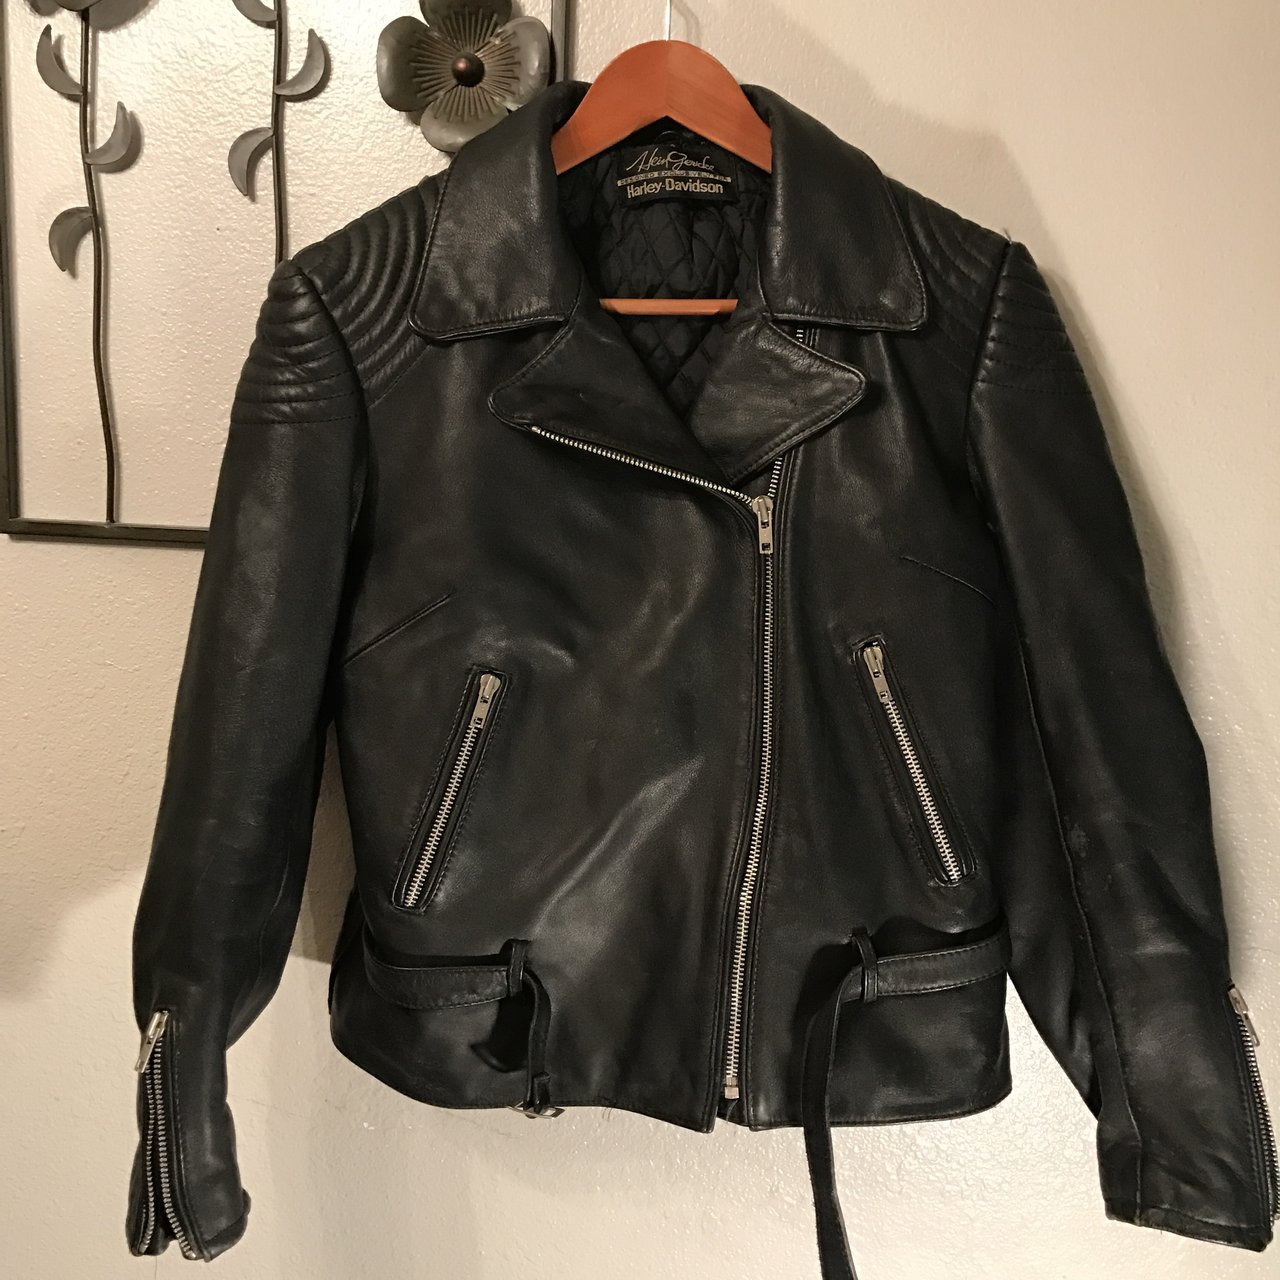 2019 year for women- Davidson Harley leather jackets collection pictures